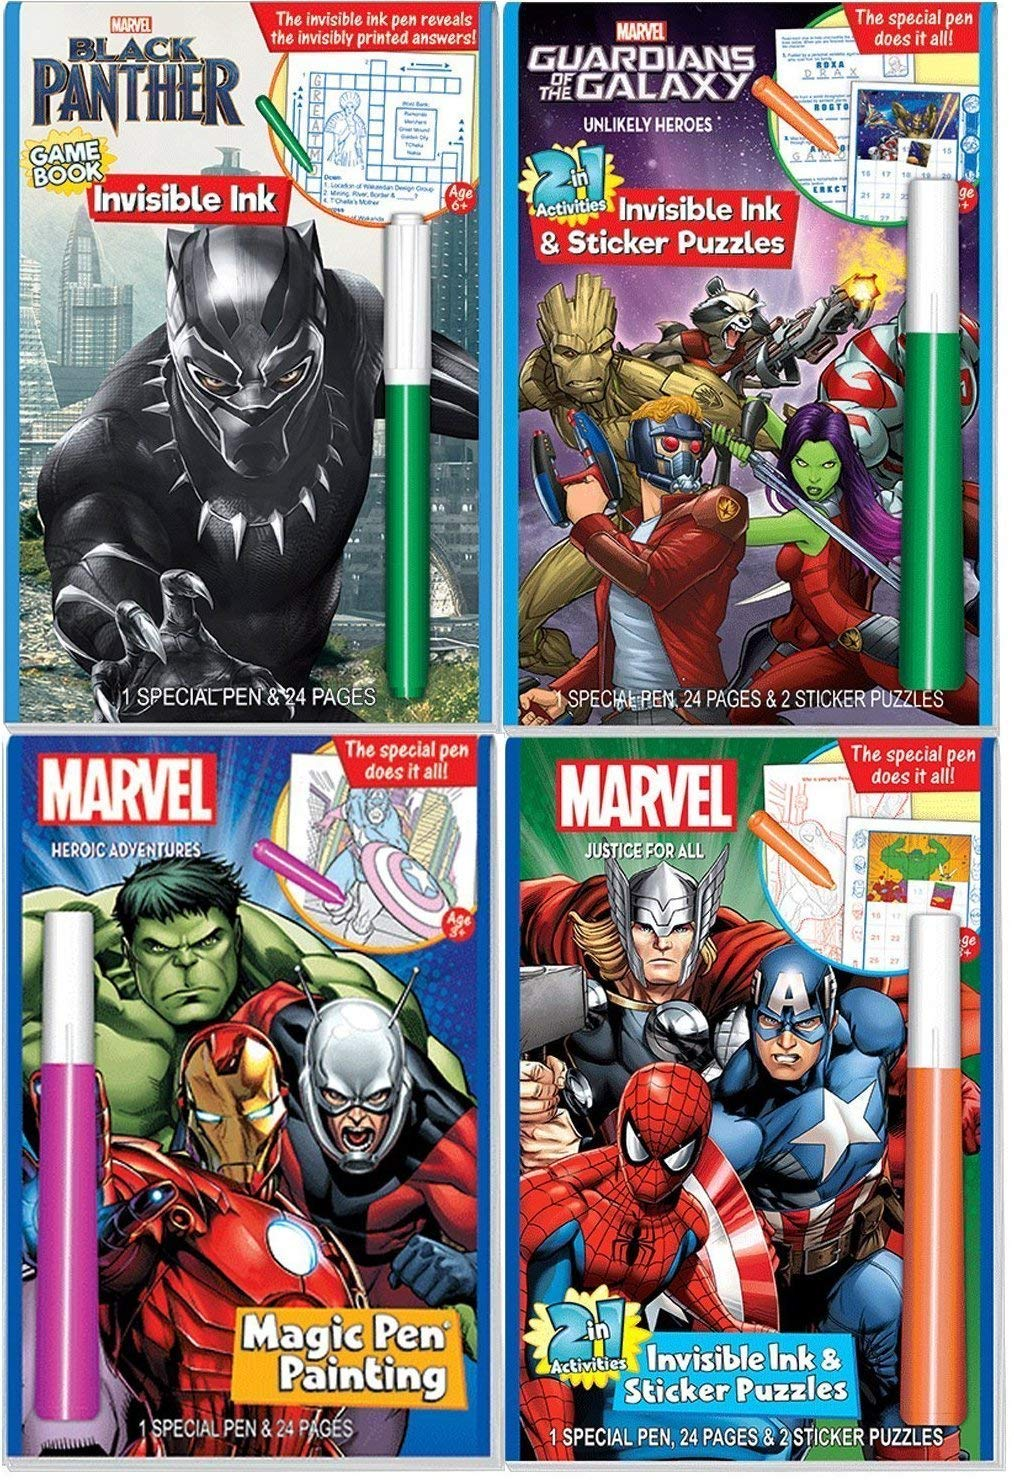 Includes: Black Panther Justice for All Lee Publications Heroic Adventures /& Guardians of the Galaxy coloring books Marvel Super Hero Characters Magic Pen Painting Activity Books for Boys with Zipafile Zipper Bag